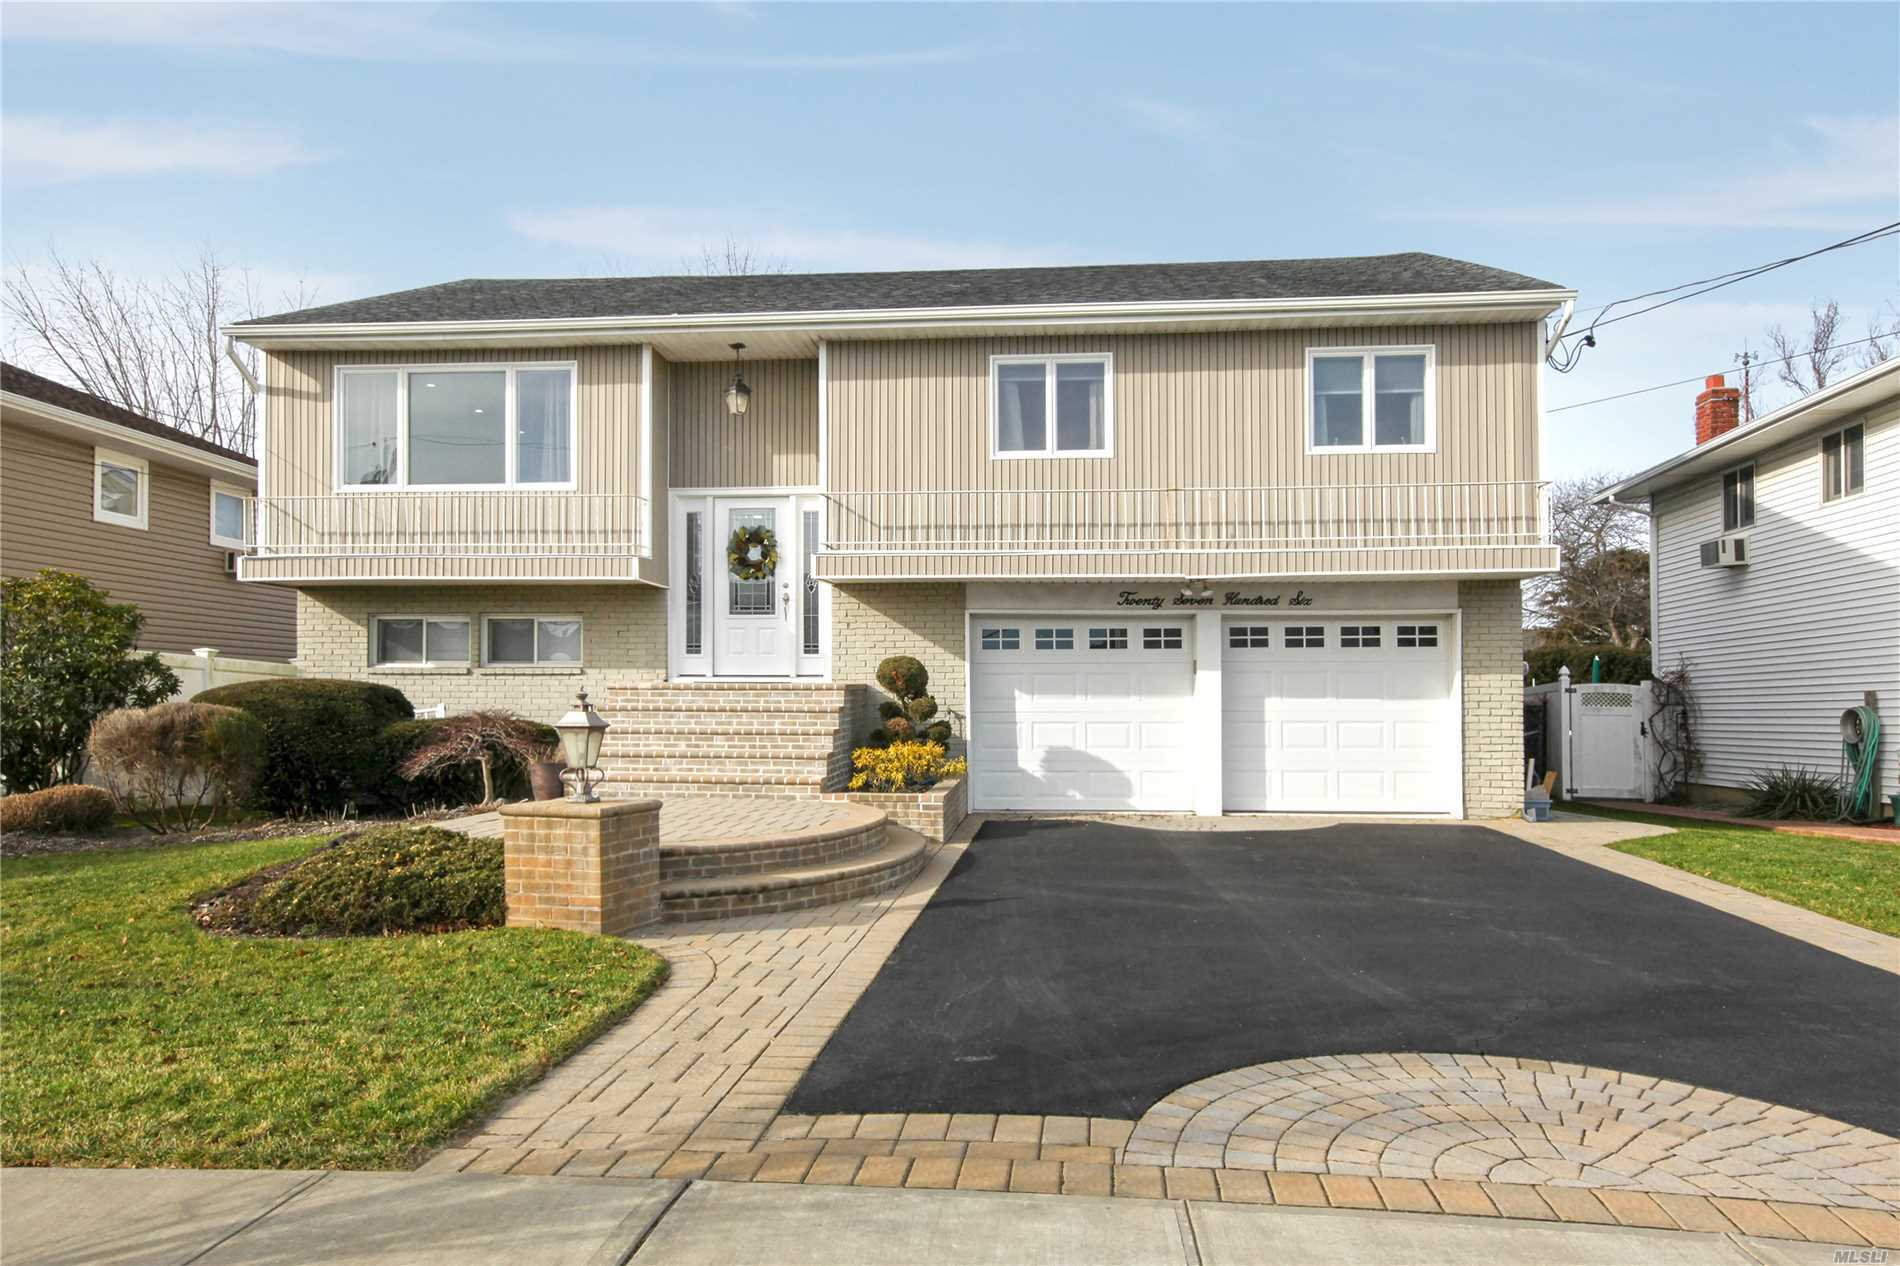 This Is A Wow! Waterfront Beauty! Better Than New! 2 Yr Old Quartz/White Wd And Ss Eik W/ Center Isle, Farm Sink, Sbway Bk Splash, Soft Slide Drawers & Pullouts. Open Layout, Led Hi Hats, Gleaming Wood Floors, 20 X 40 Expansion, With Huge Den W/ Vaulted Ceiling. Newer Lg W/D On Main Level, Master Suite W/ New Marble Bathrm, Large Wic, 3 Additional Large Bedrms, Lower Level Perfect M/D W/ Summer Kitchen, Large Bdrm, Den W/ Fp, Newer2 Car Garage, Powder Rm W/ Access From Country Club Yard Huge Room